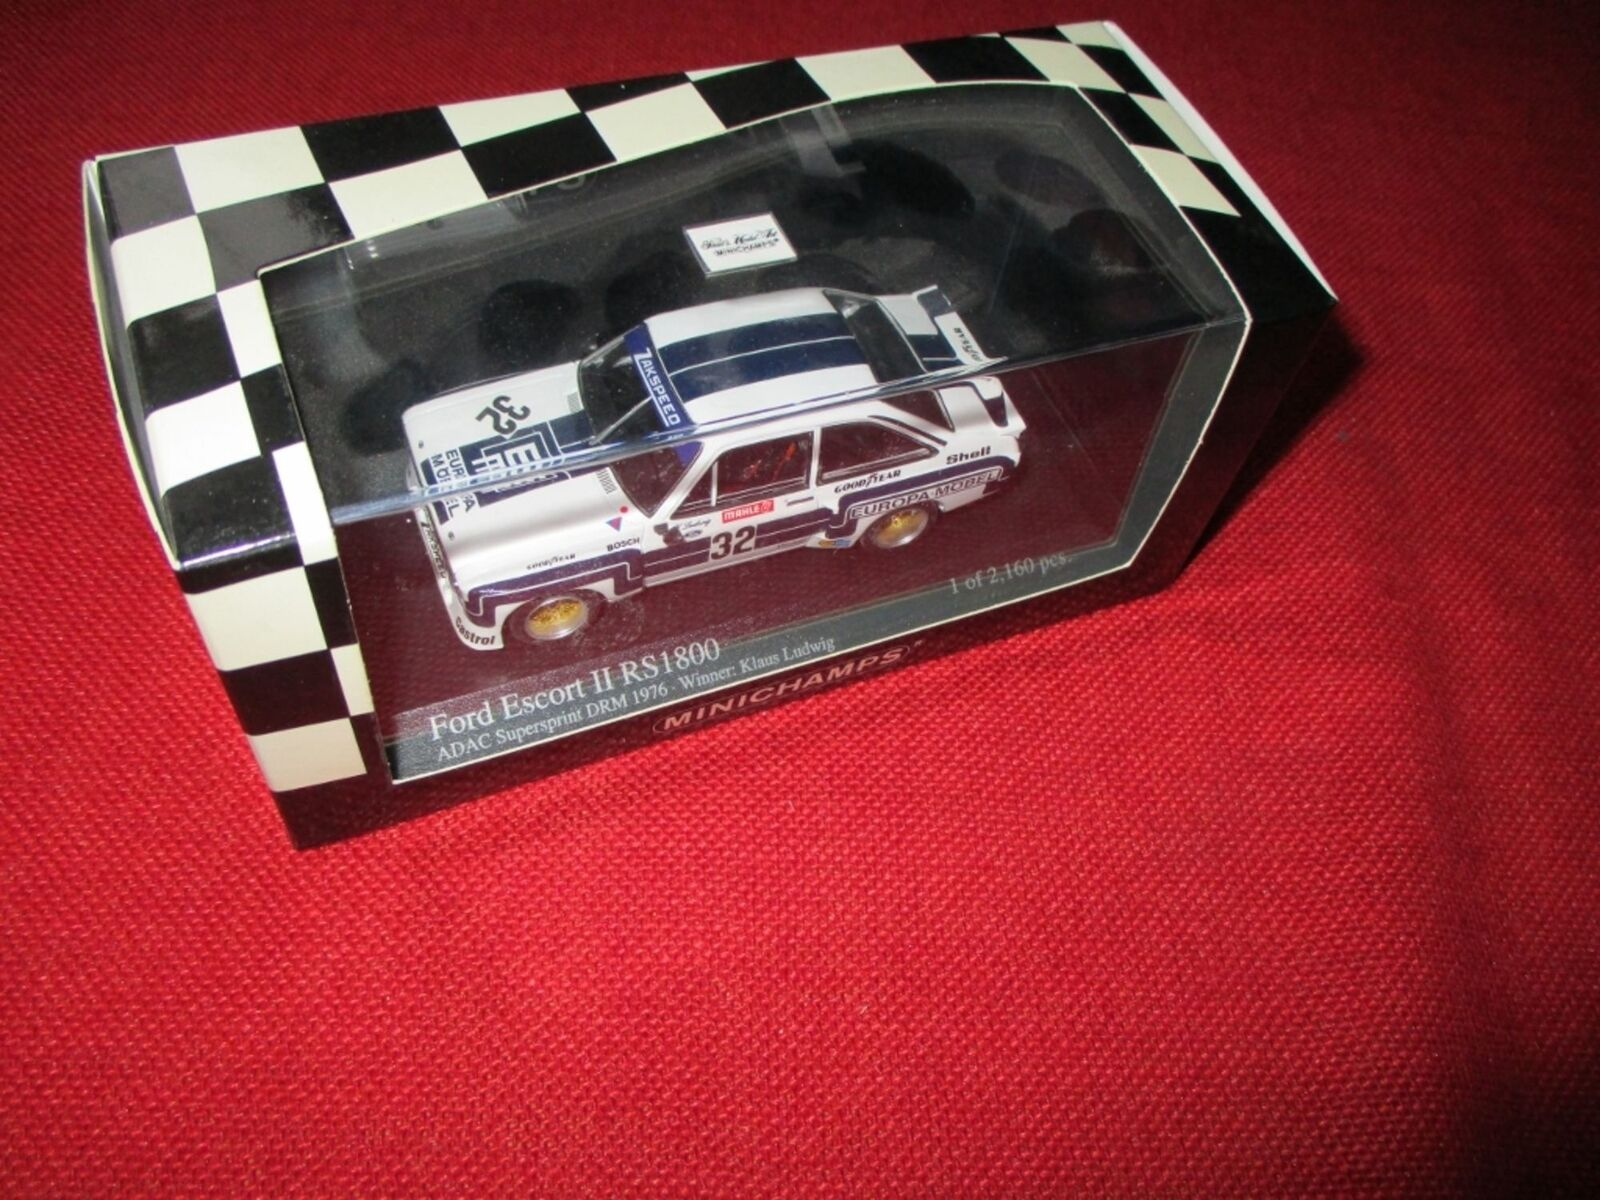 MINICHAMPS® 400 768432 1 43 Ford Ford Ford Escort II RS1800 Winner DRM Supersprint 1976  | Neues Design  8d7380